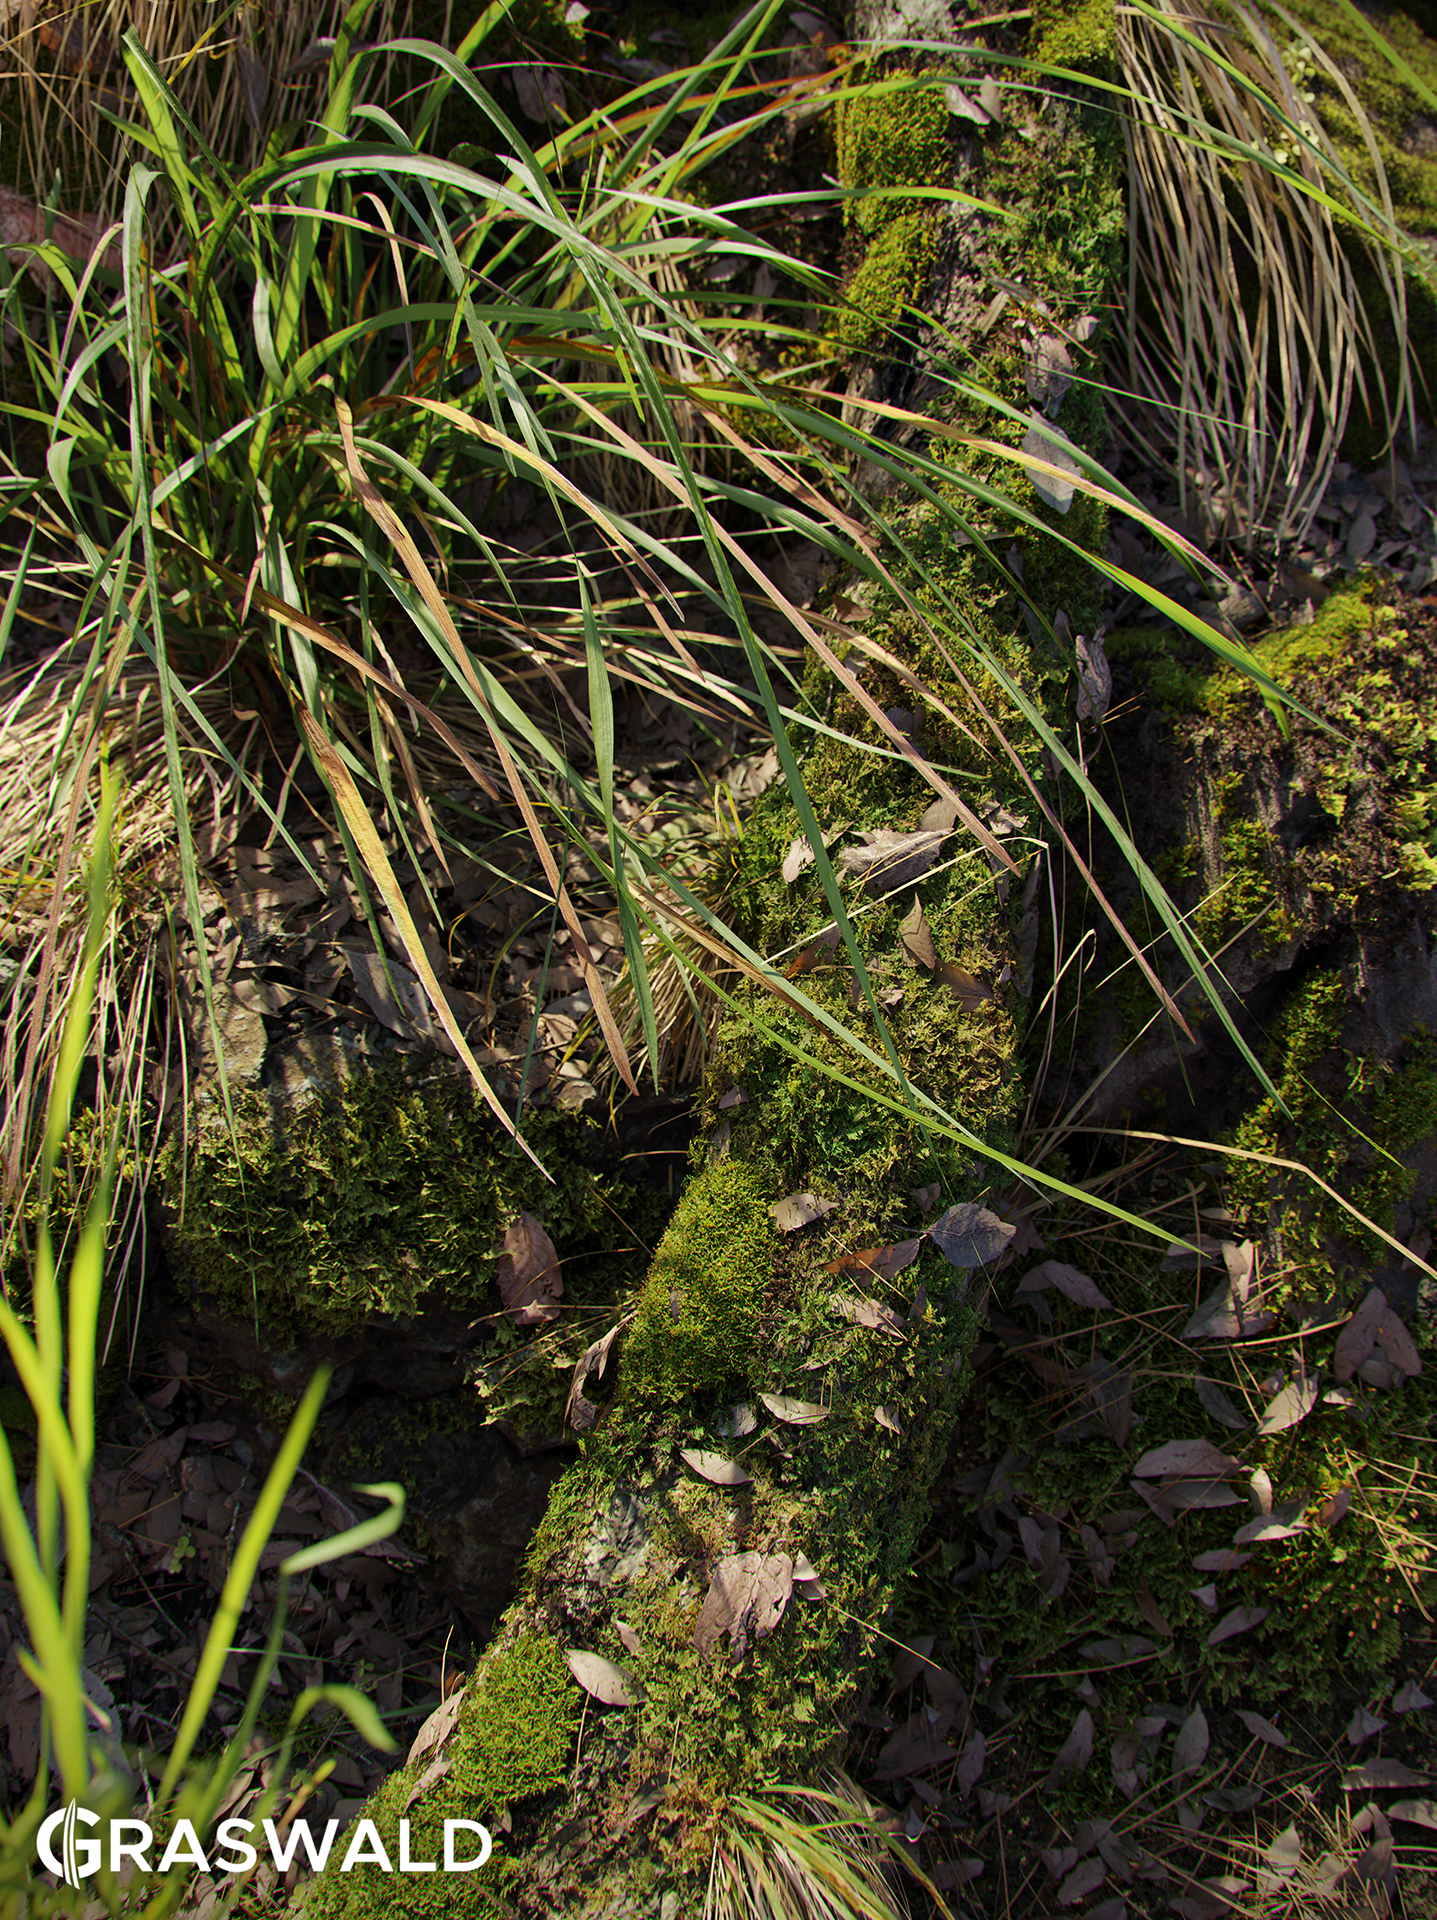 Grass Carpet Graswald Is Professional Highquality Asset Pack Containing Different Species Of Weeds Grass And Moss As Well As Various Kinds Of Debris Creative Market Graswald For Blender Blender Marketgraswald For Blender Blender